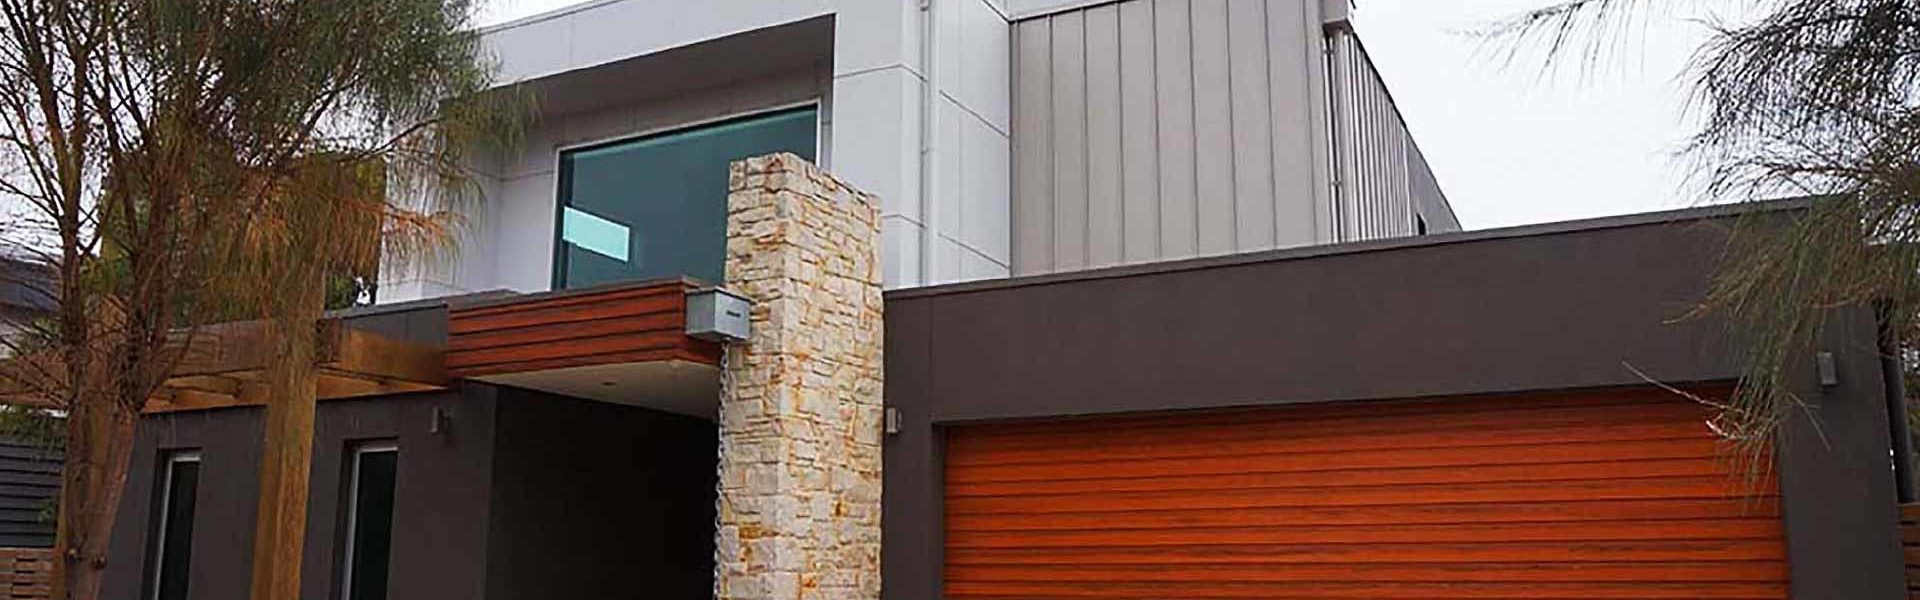 Plumbers Pipe Cladding : Architectural cladding systems geelong total comfort